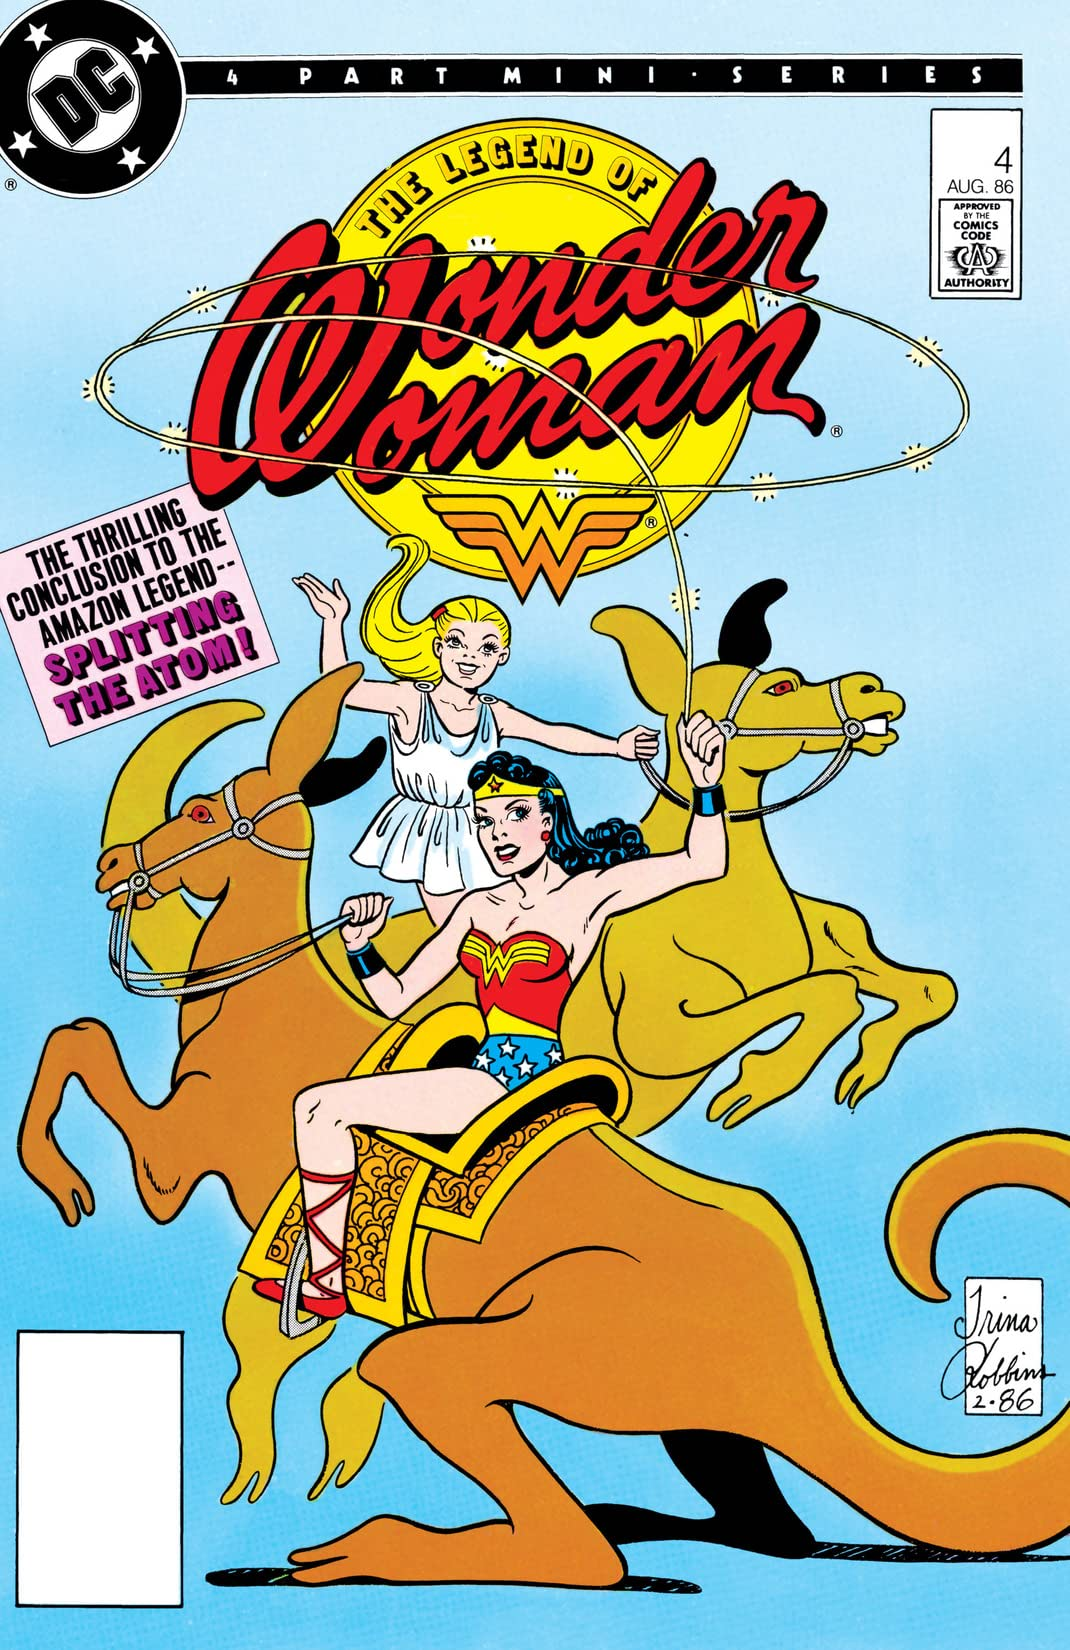 The Legend of Wonder Woman (1986) #4